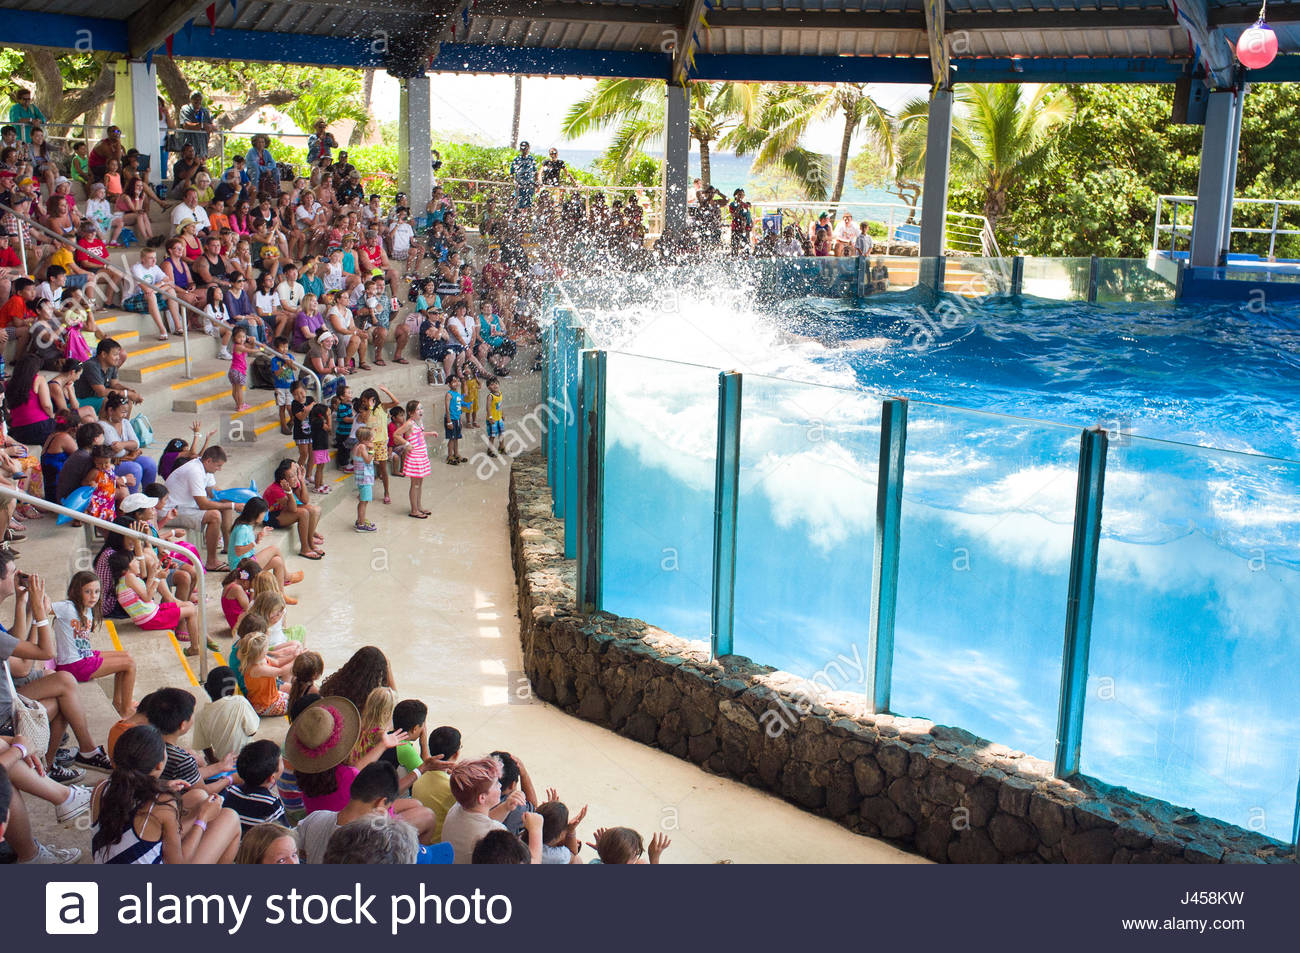 People watching the Dolphin performance at the Hawaii Ocean Theatre, Sea Life Park, Waimanalo, Oahu, Hawaii, USA - Stock Image